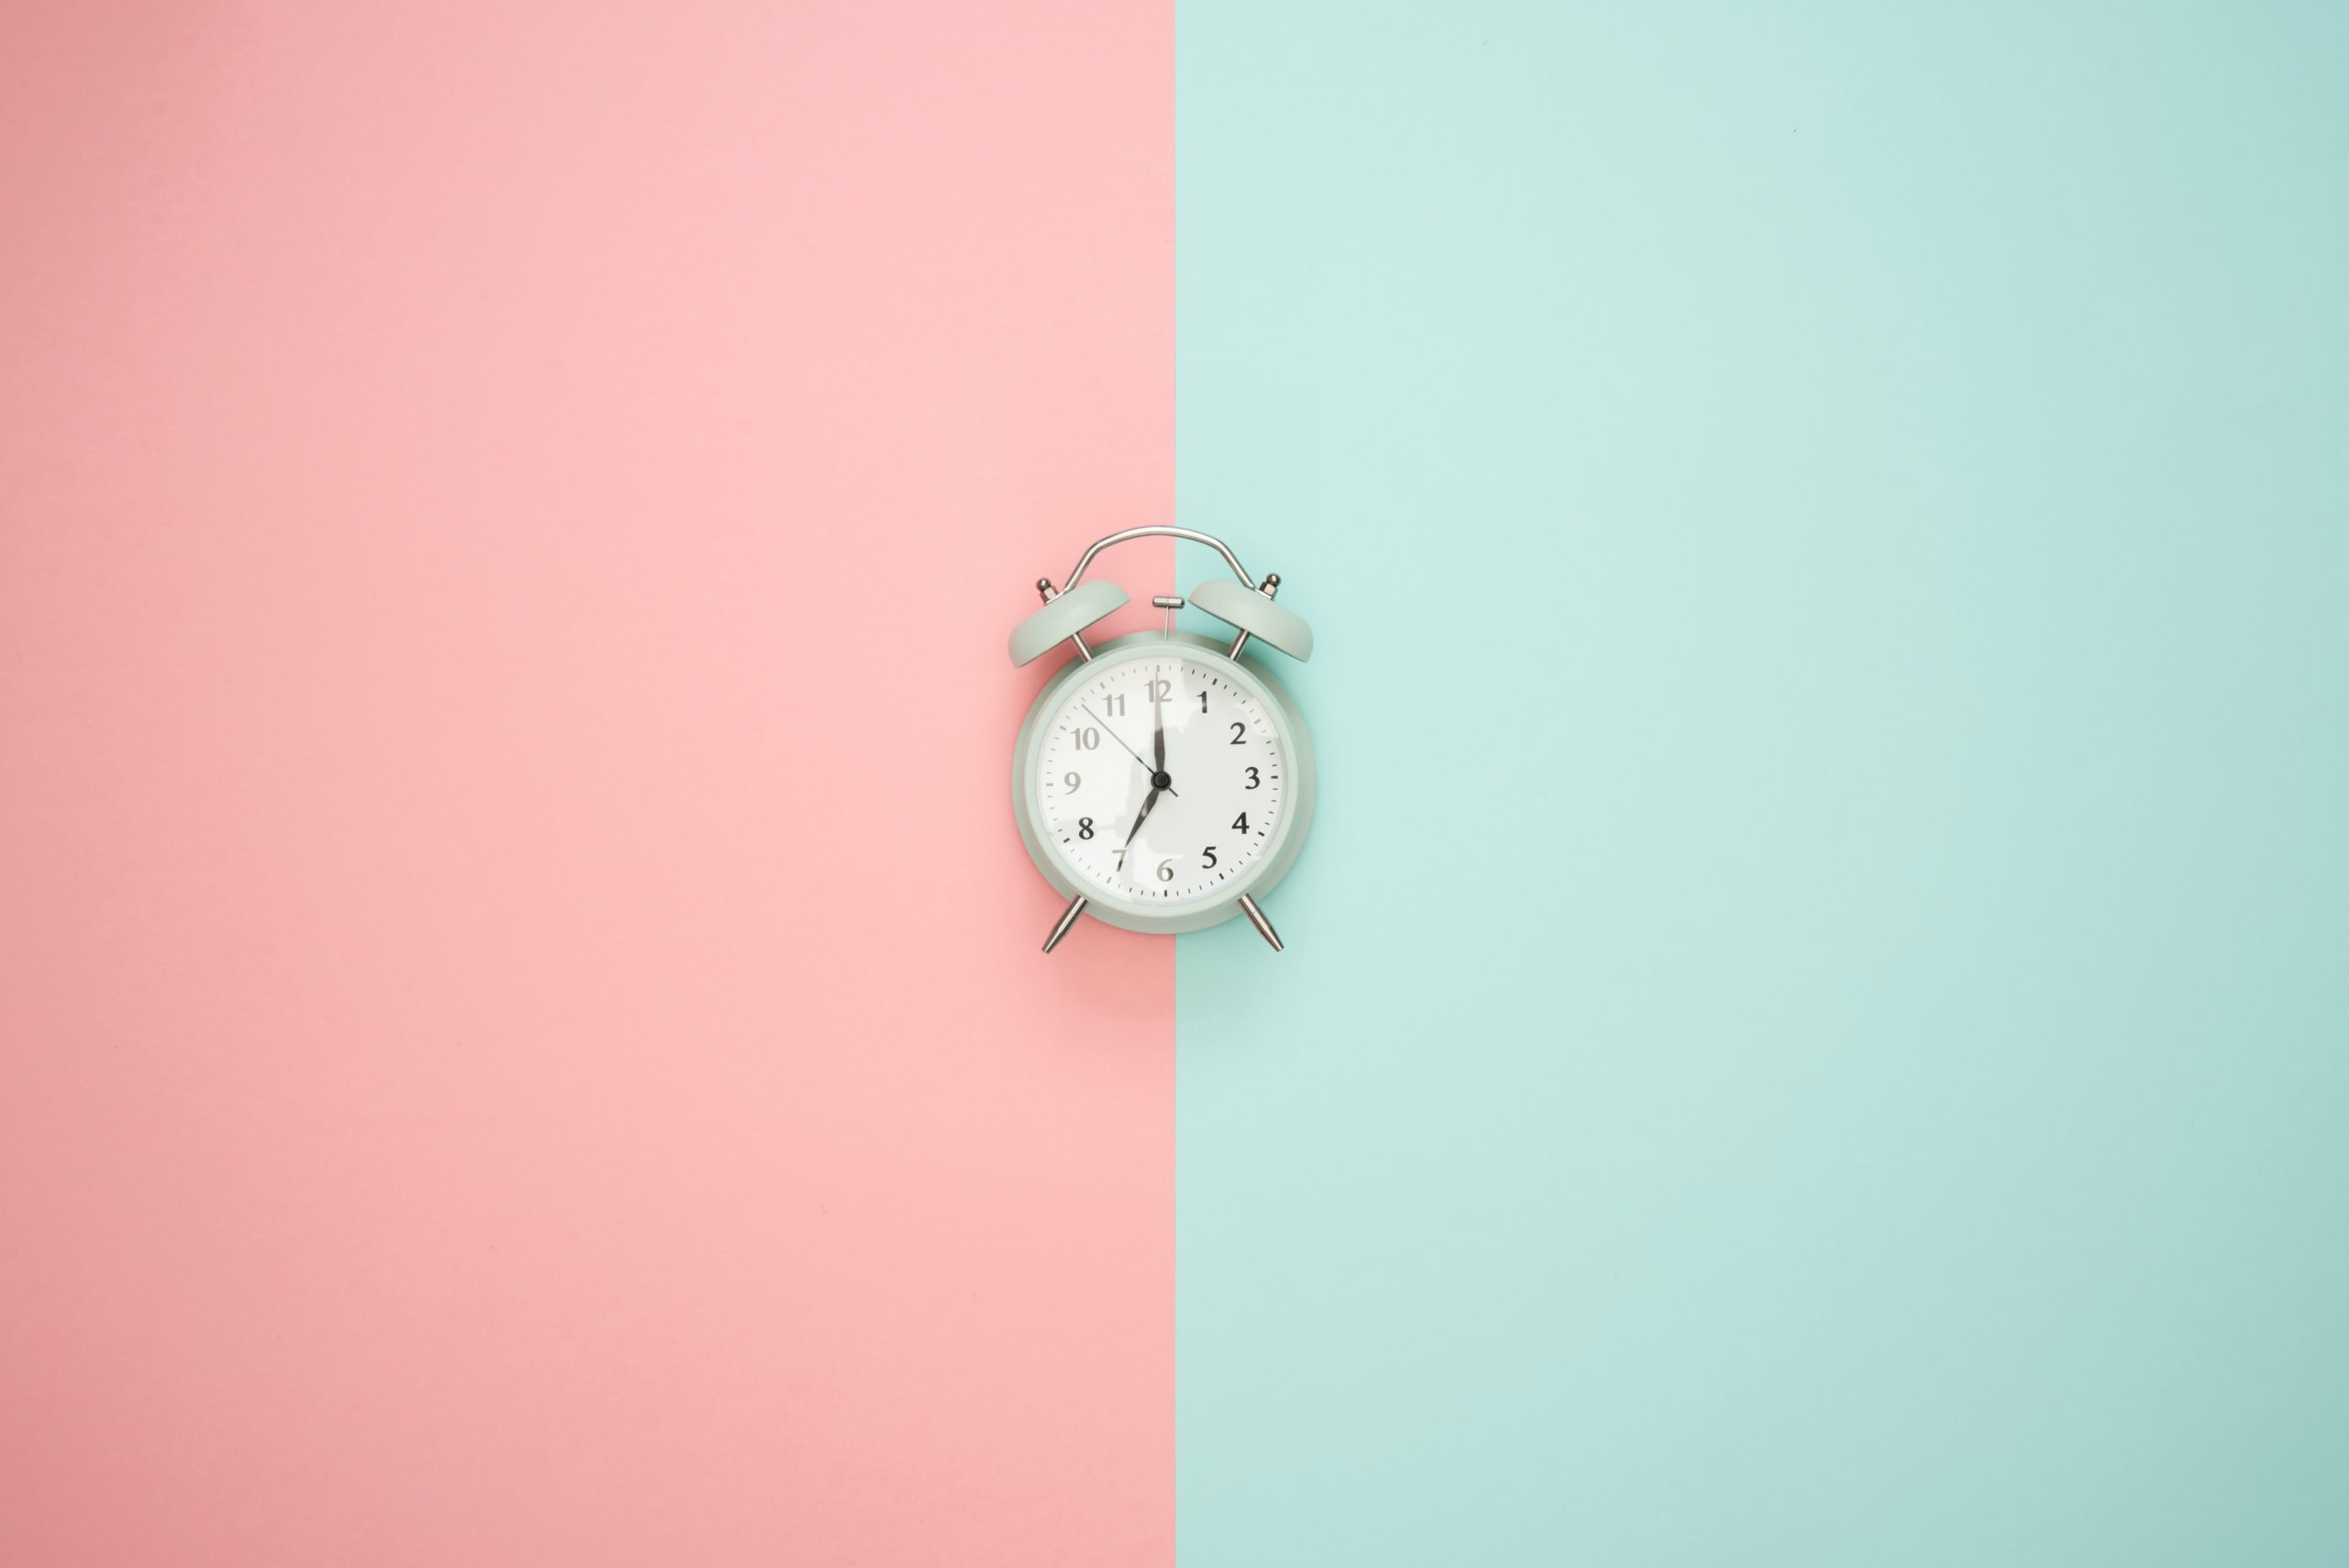 How to Use Time Wisely: